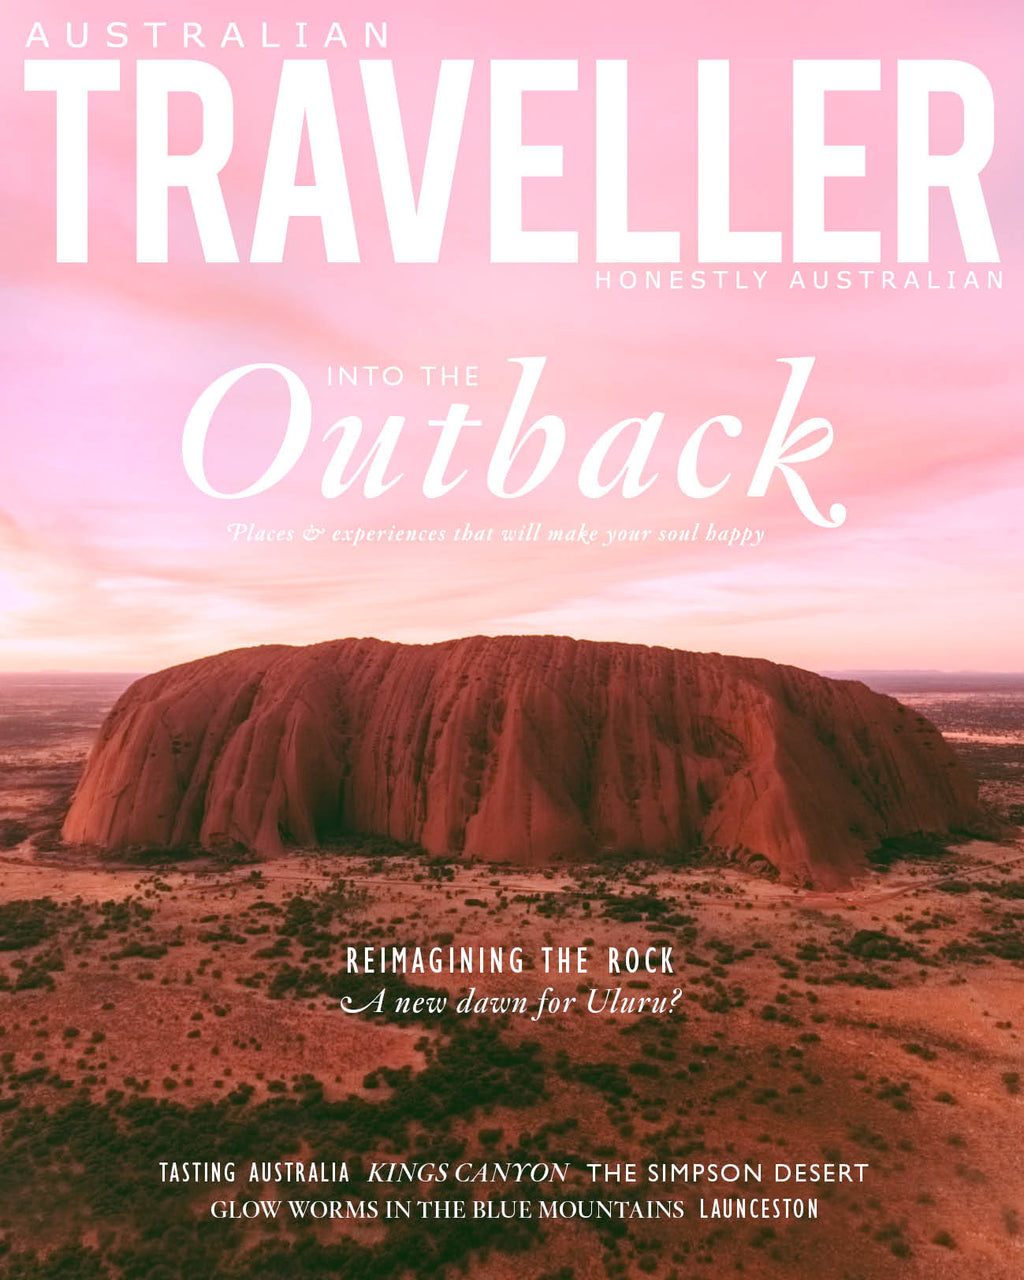 Australian Traveller Issue 86 (Feb/Mar/Apr 2020)